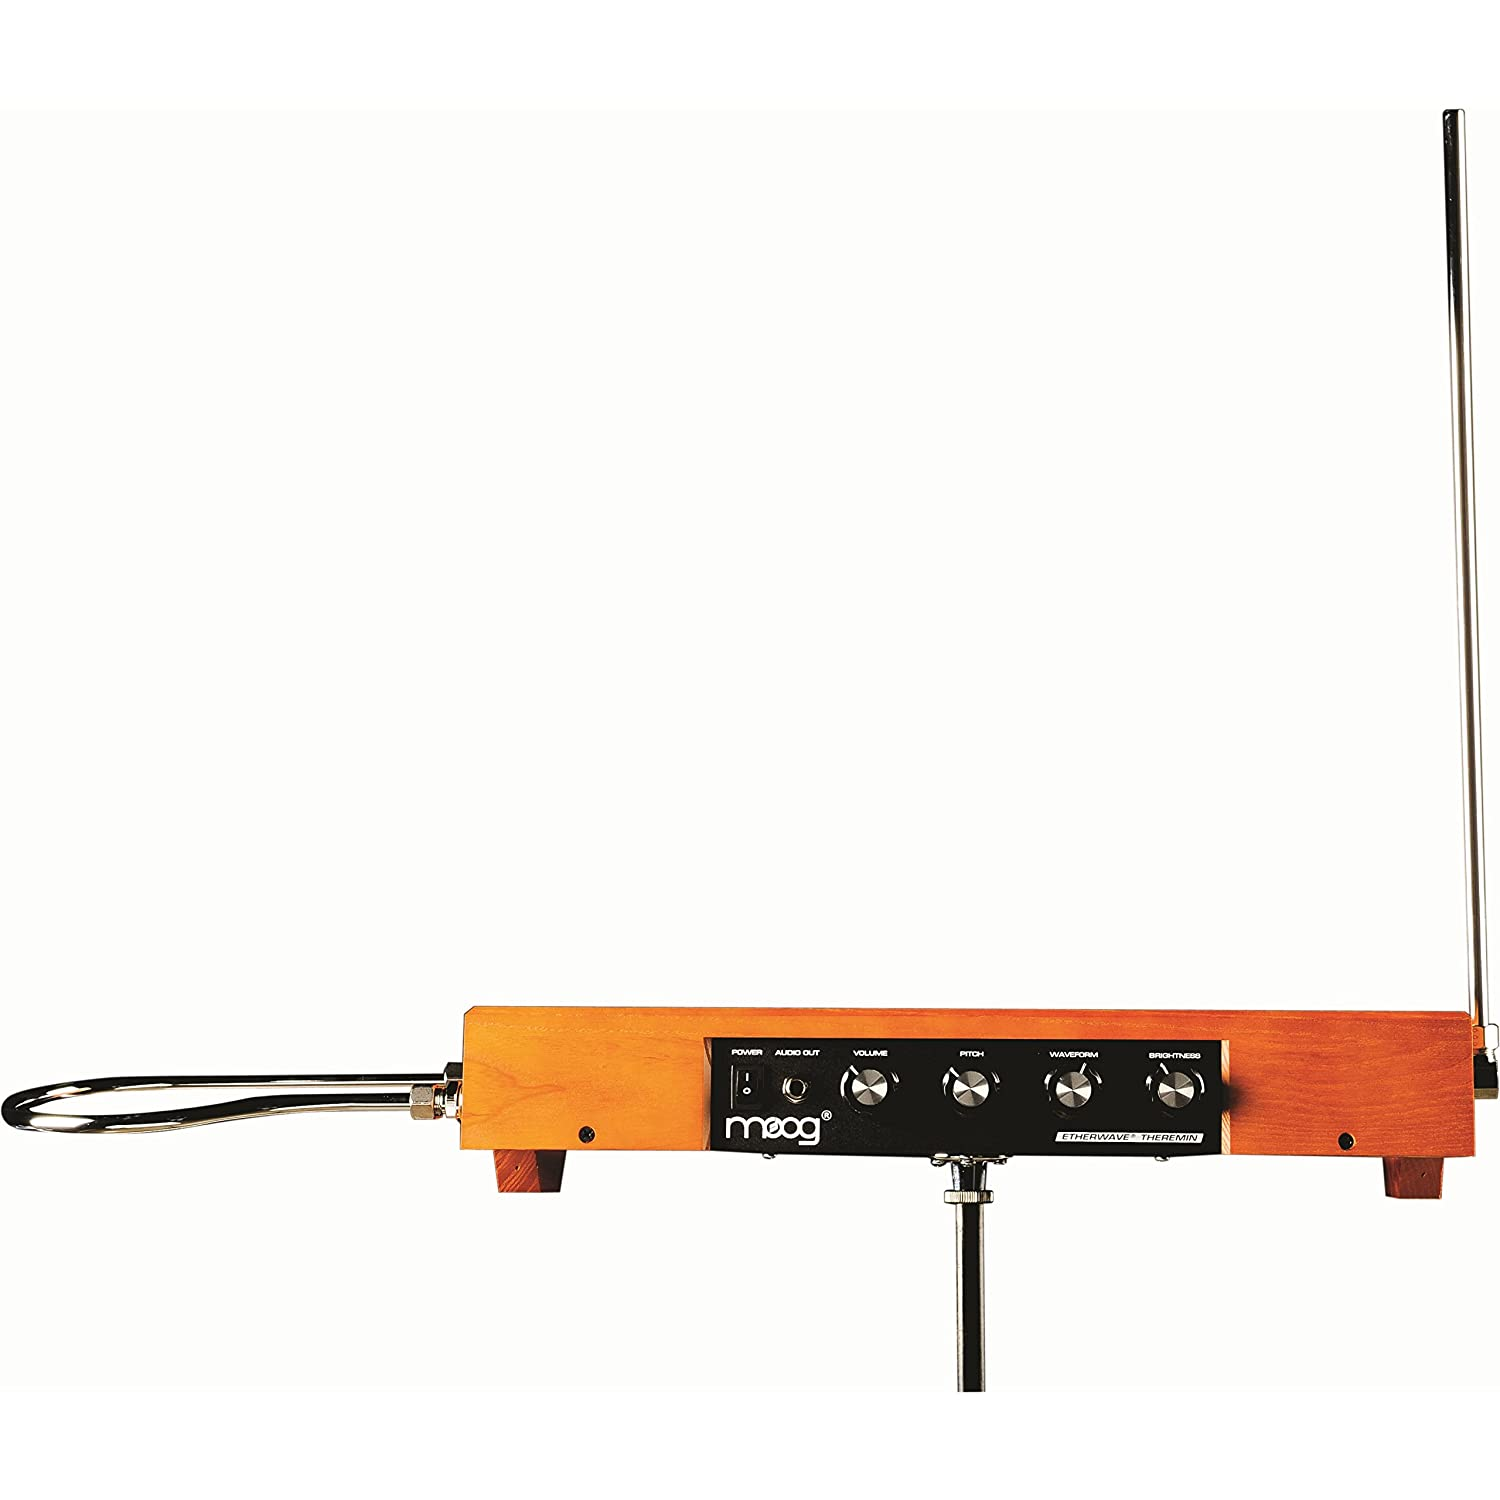 Moog Etherwave Theremin Musical Instruments Simple